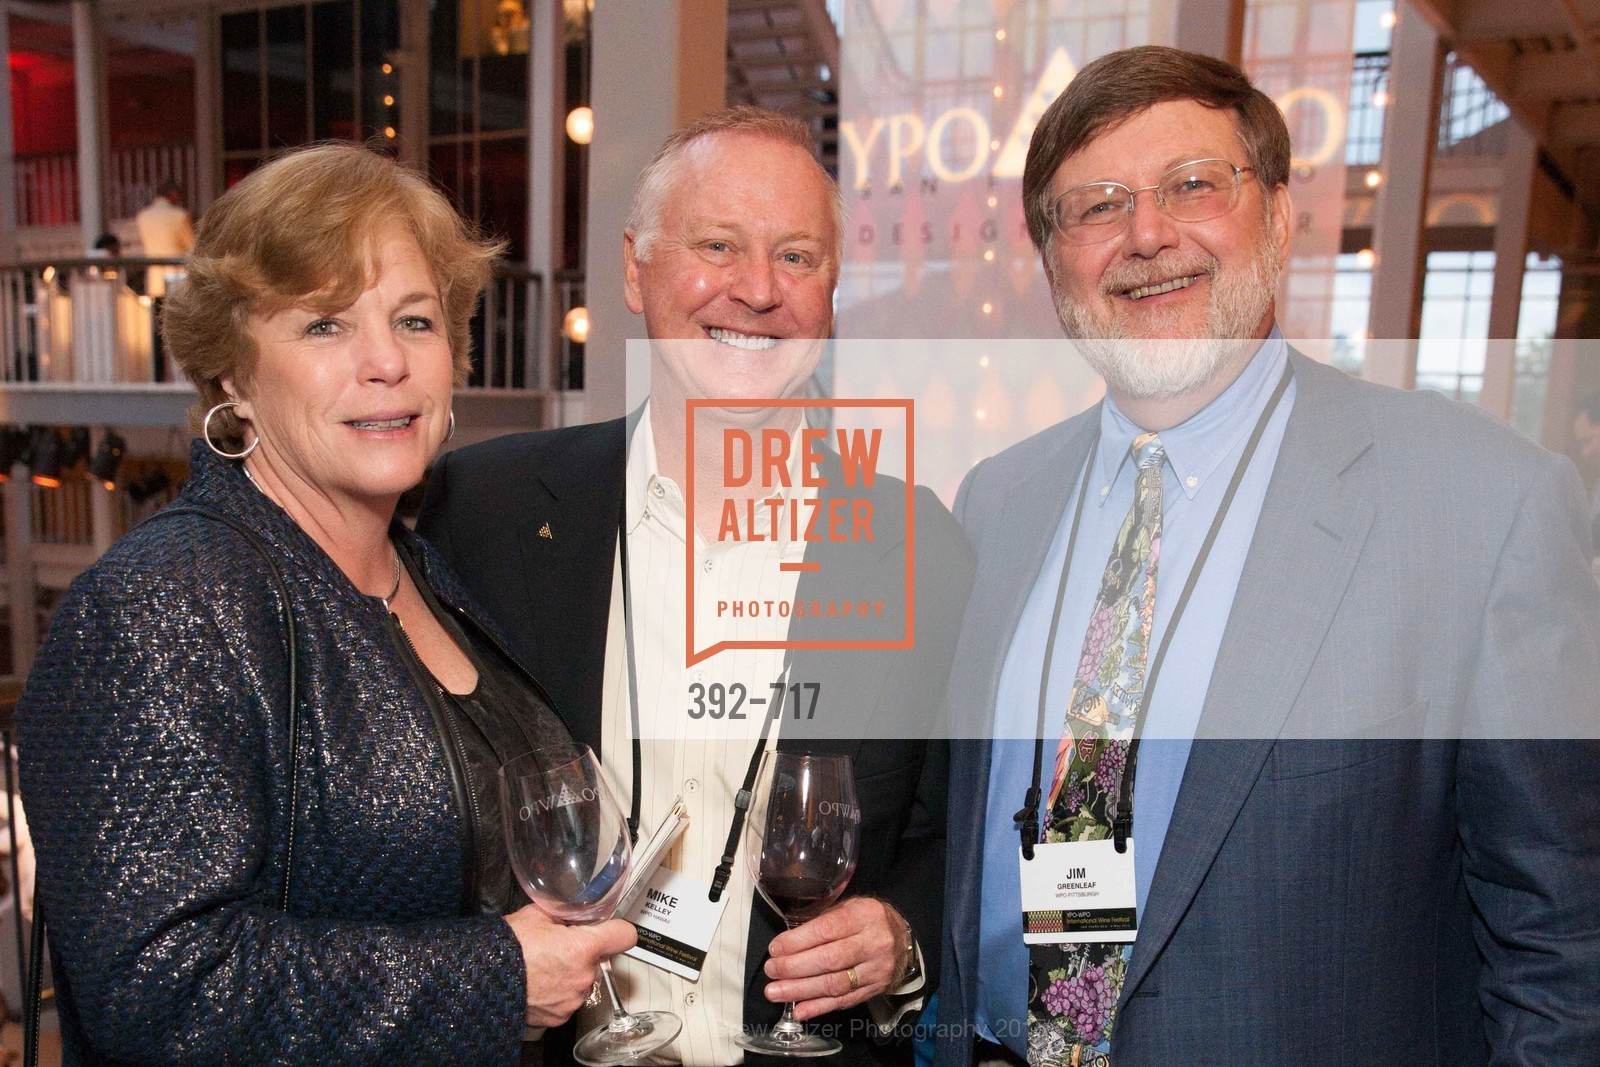 Nancy Greenleaf, Mike Kelly Jim Greenleaf, YPO Wine Festival, US, May 11th, 2015,Drew Altizer, Drew Altizer Photography, full-service agency, private events, San Francisco photographer, photographer california